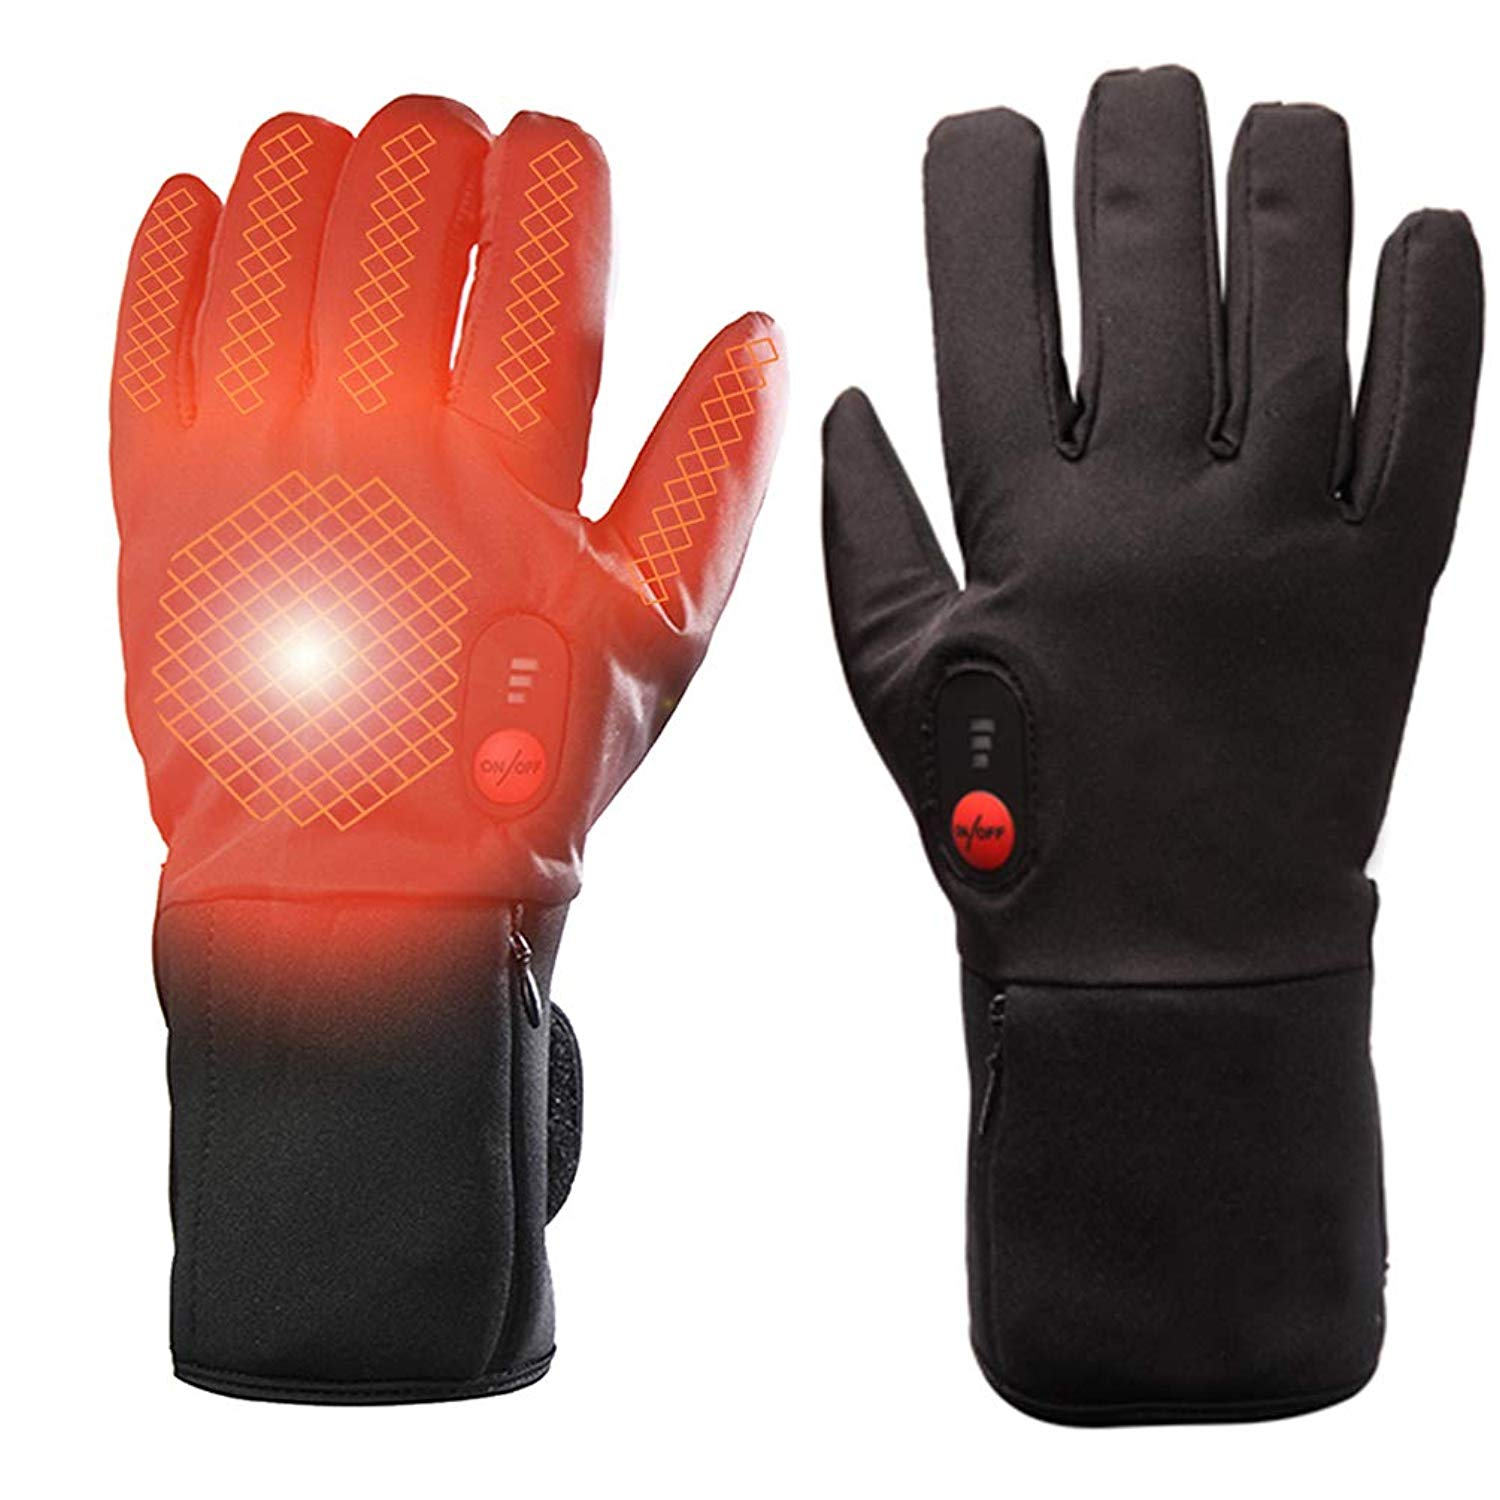 jannyshop USB Winter Warm Rechargeable Electric Battery Heated Gloves for Men and Women Outdoor Indoor battery powered Hand Warmer for Hiking Cycling Snowboarding US Plug